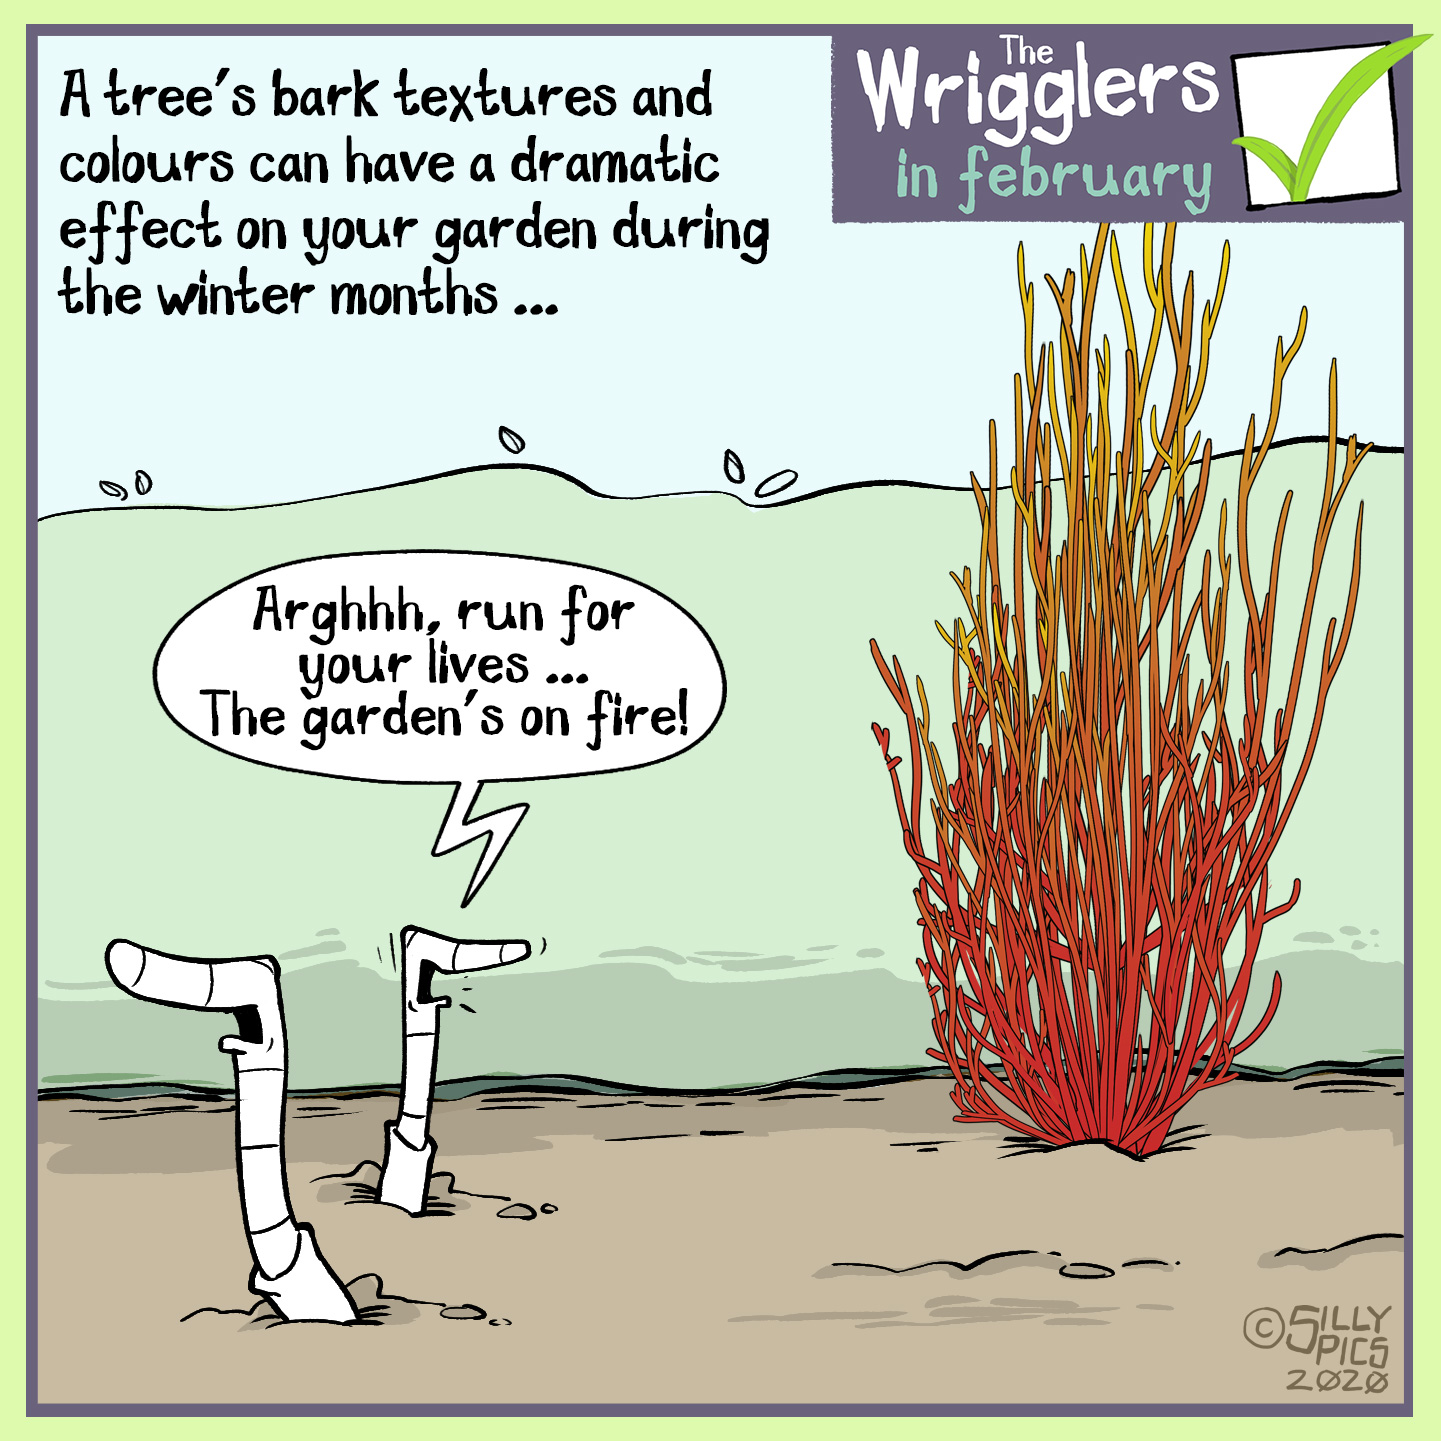 a cartoon about planting small trees in the garden and how bark colour can be an influence to setting the mood in the garden too